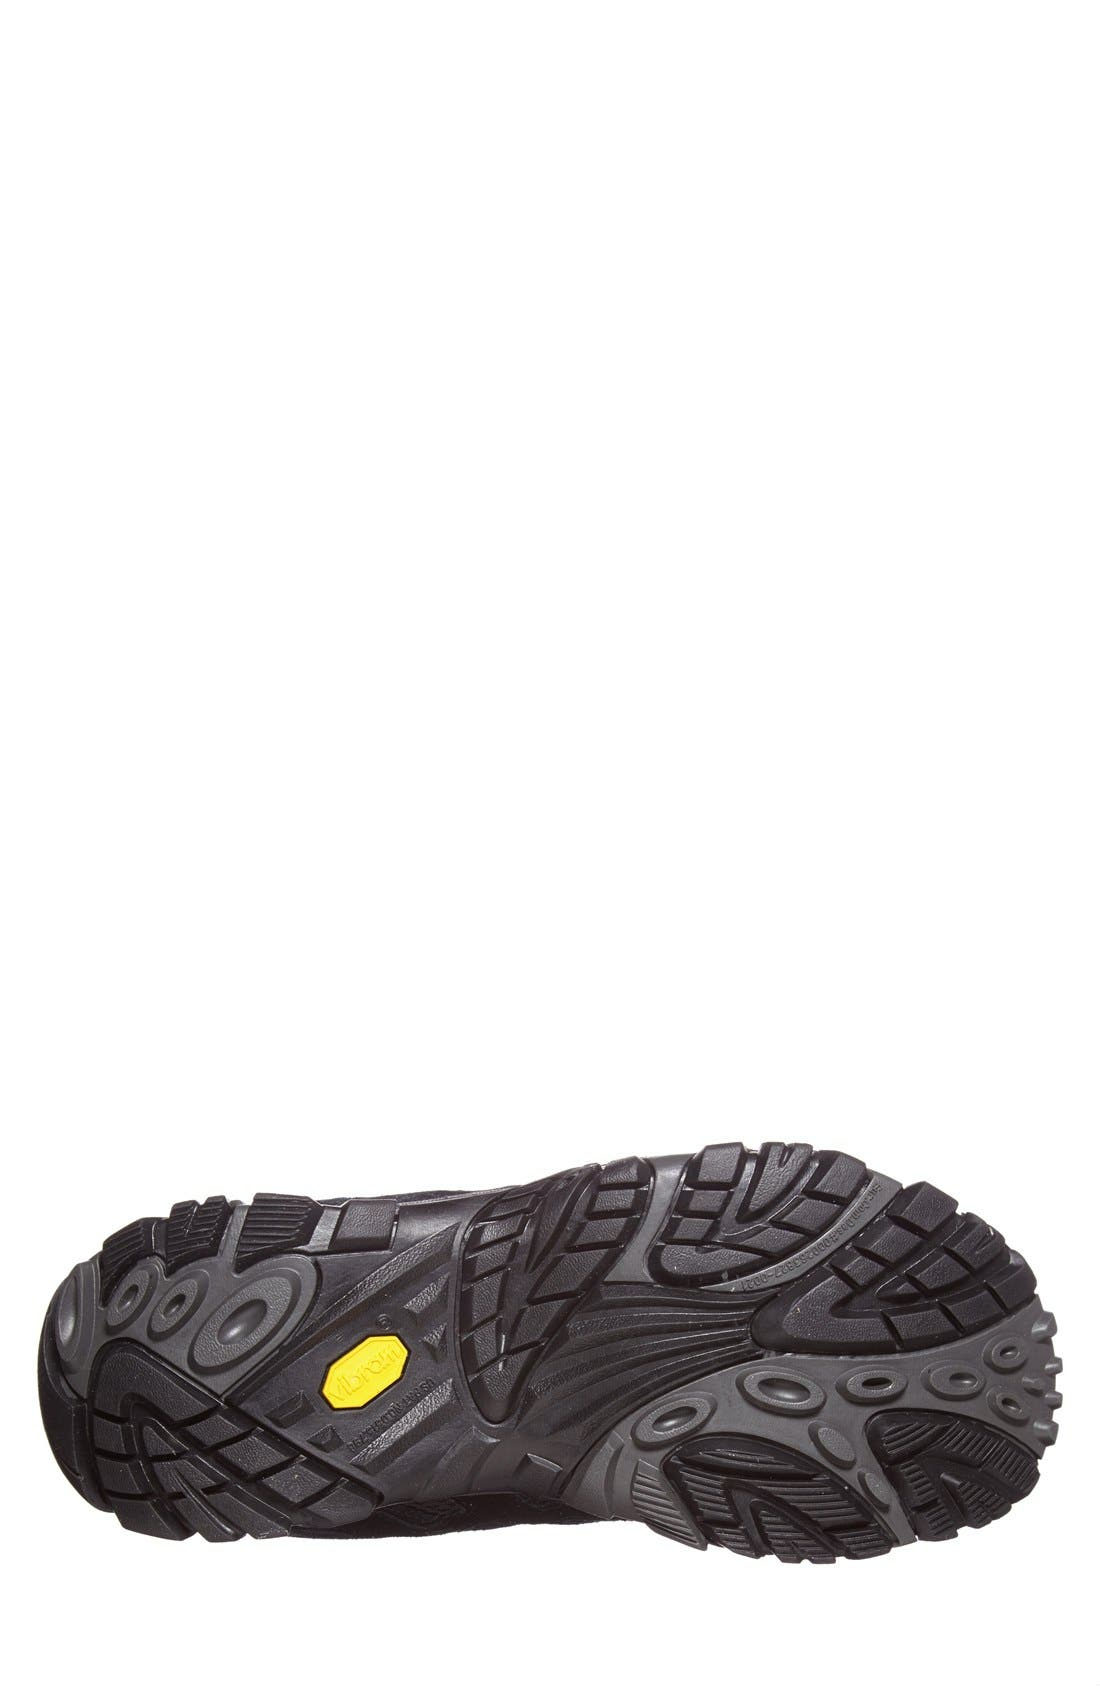 Alternate Image 3  - Merrell 'Moab Ventilator' Hiking Shoe (Men)